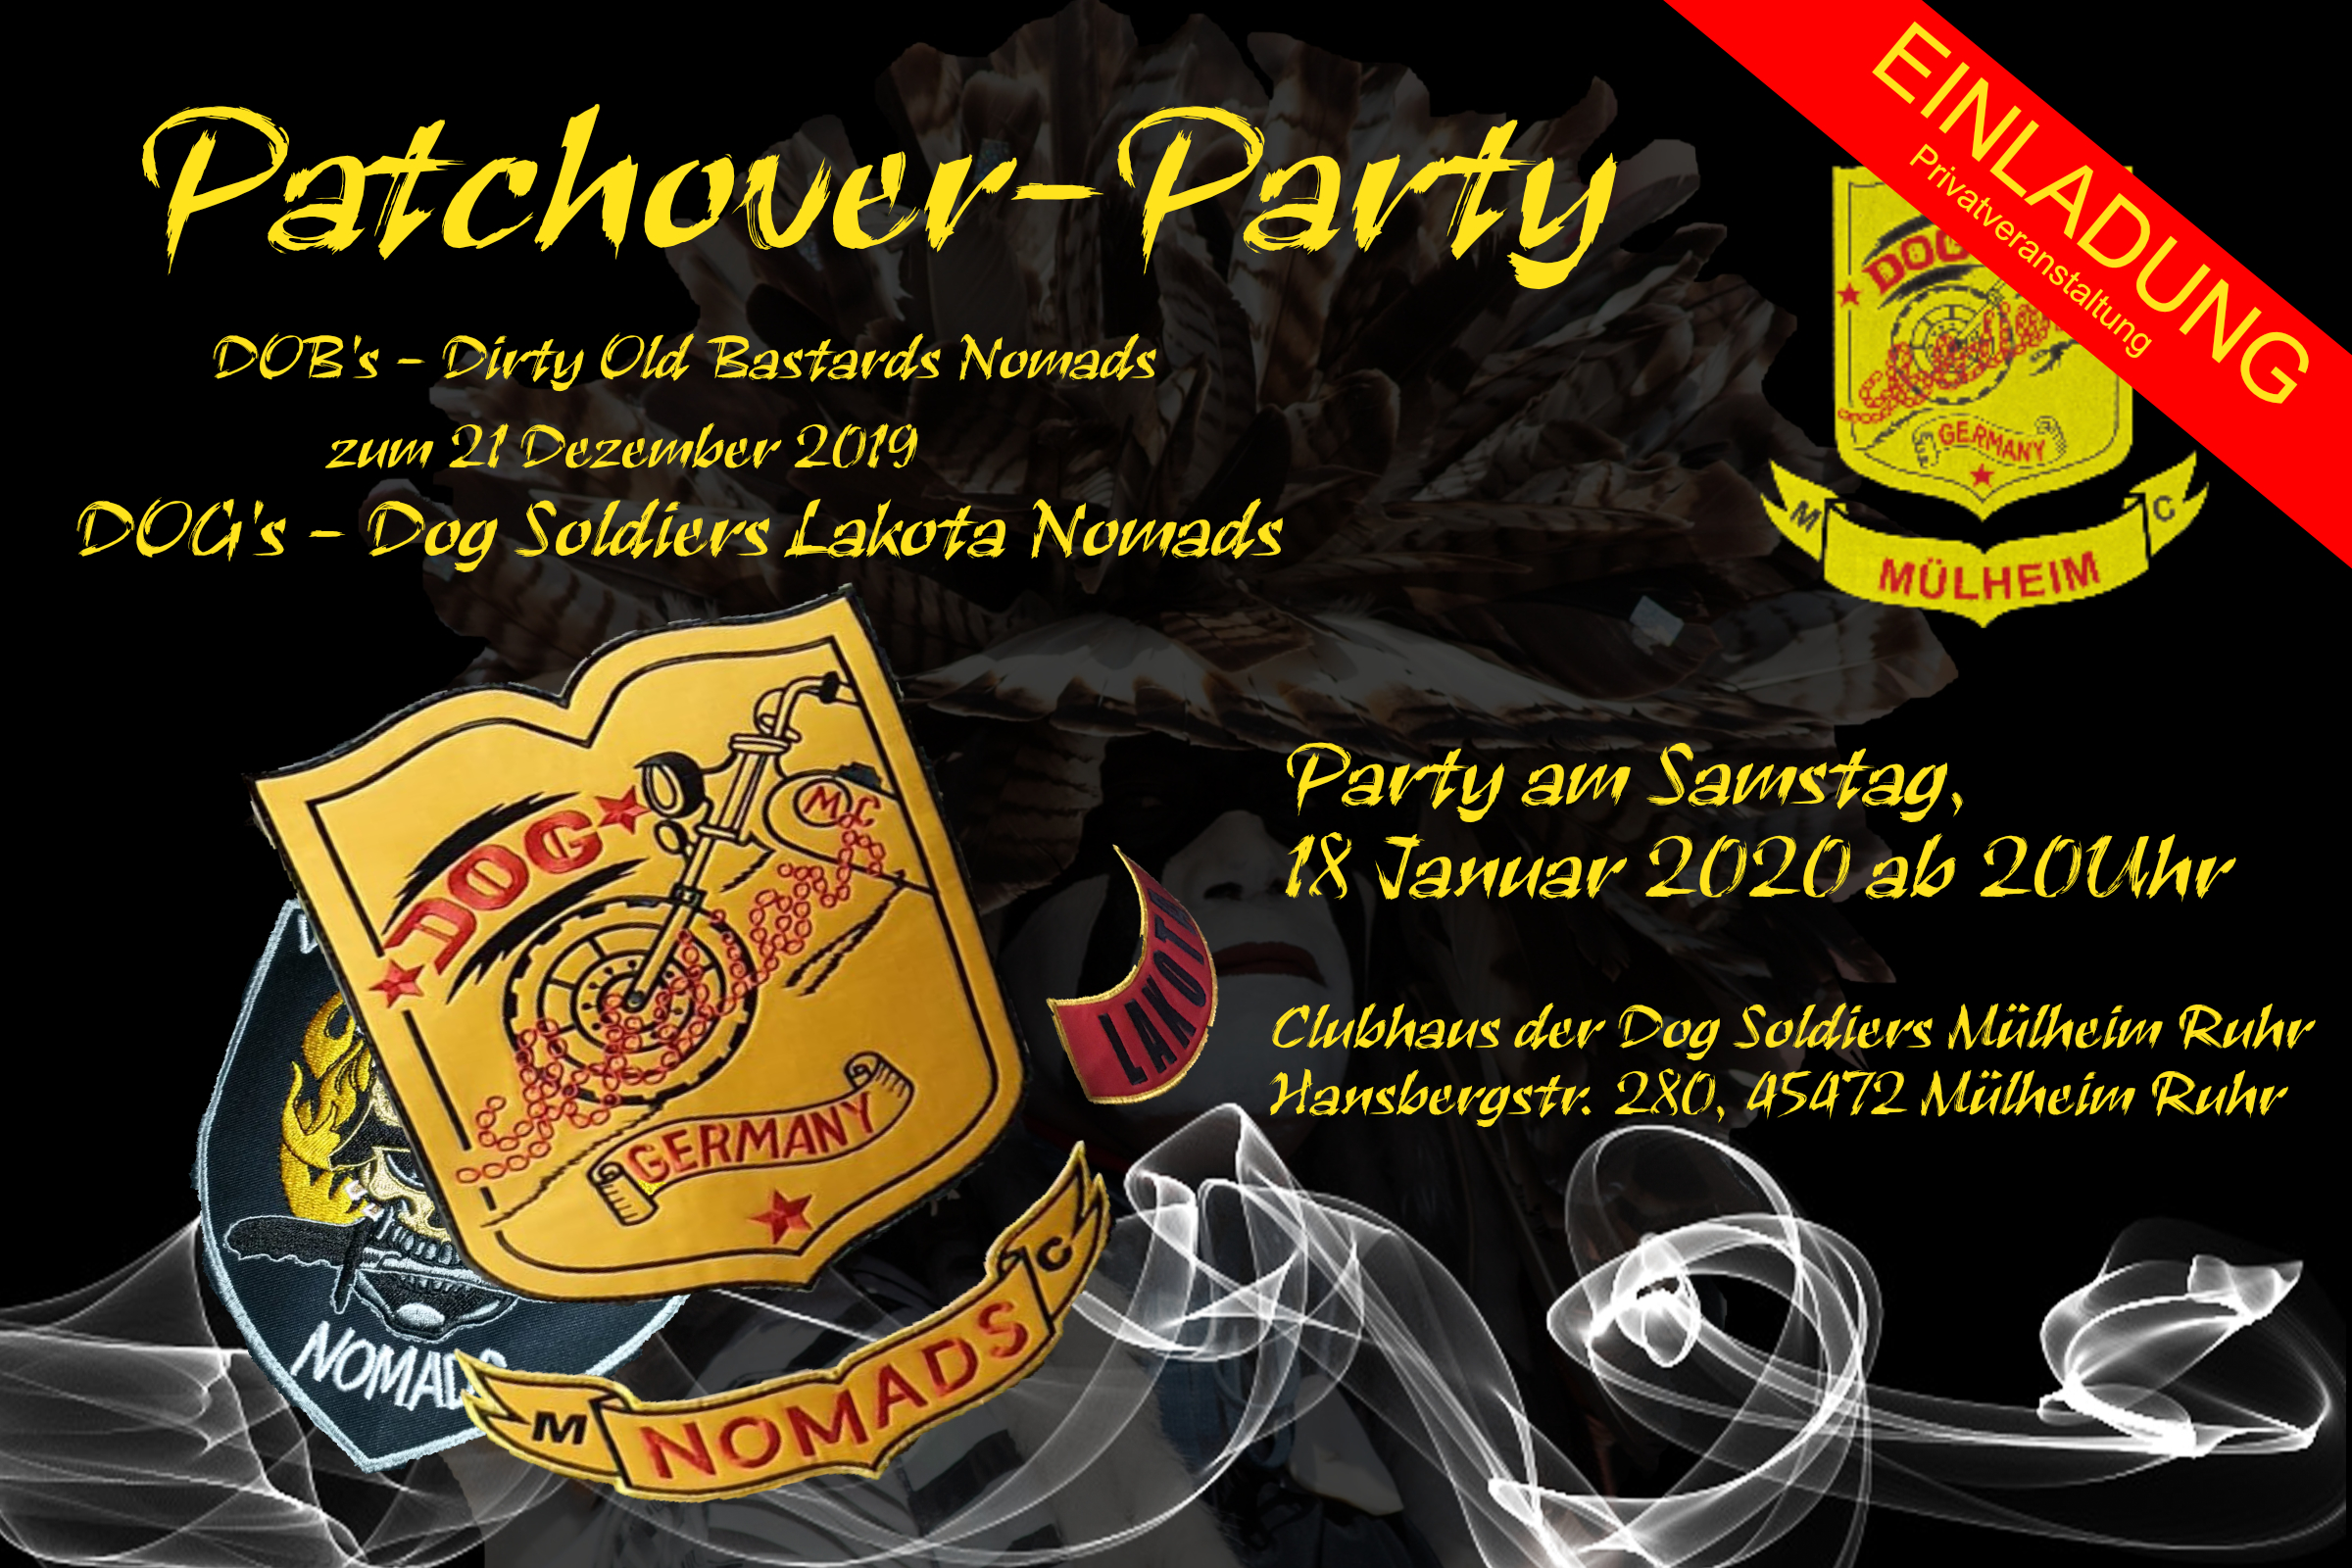 Patchoverparty DOB's